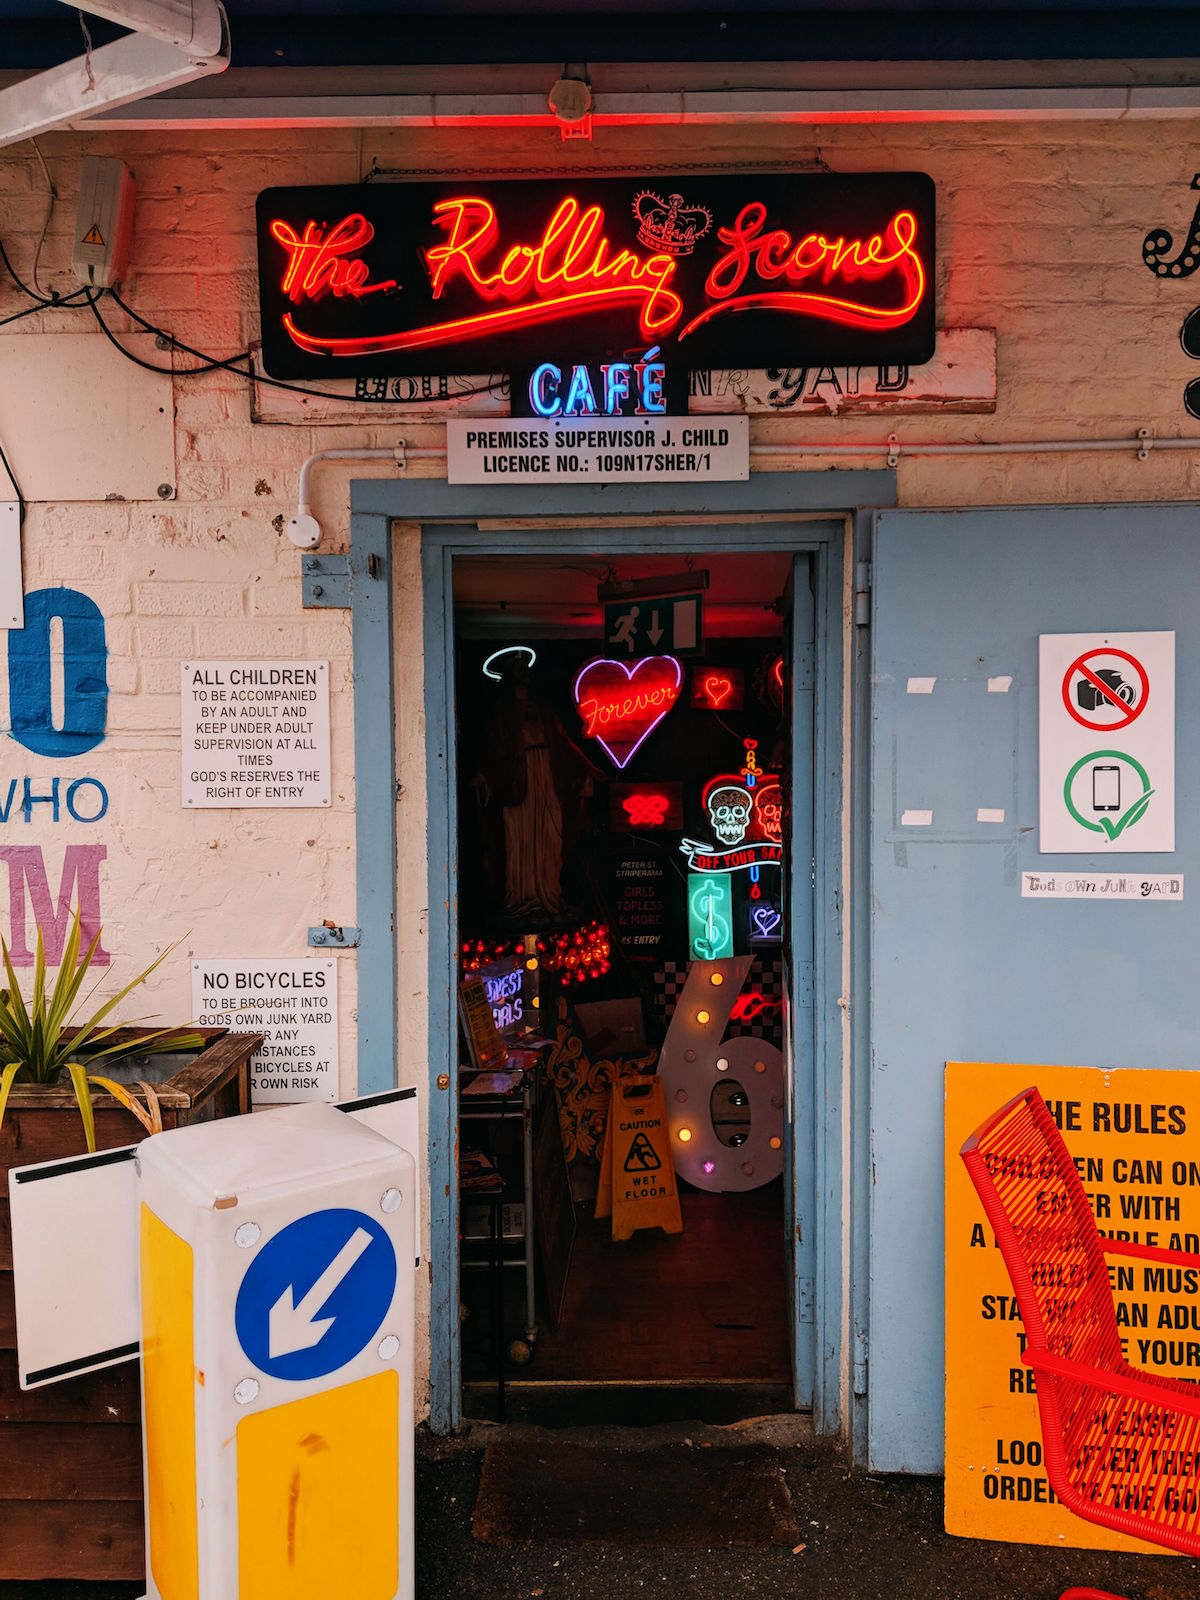 The entrance of God's Own Junkyard decorated with neon lights